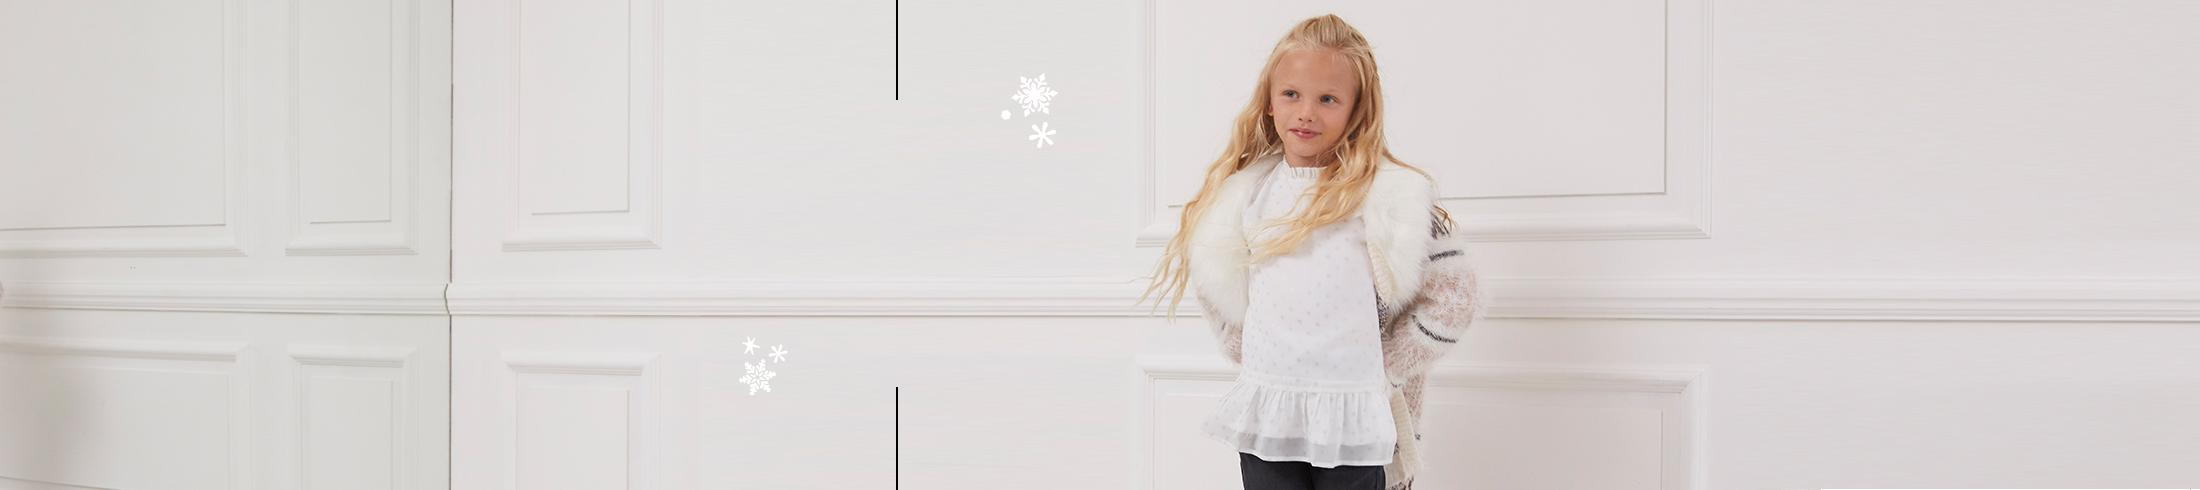 Refresh their wardrobe with new kids arrivals at George.com